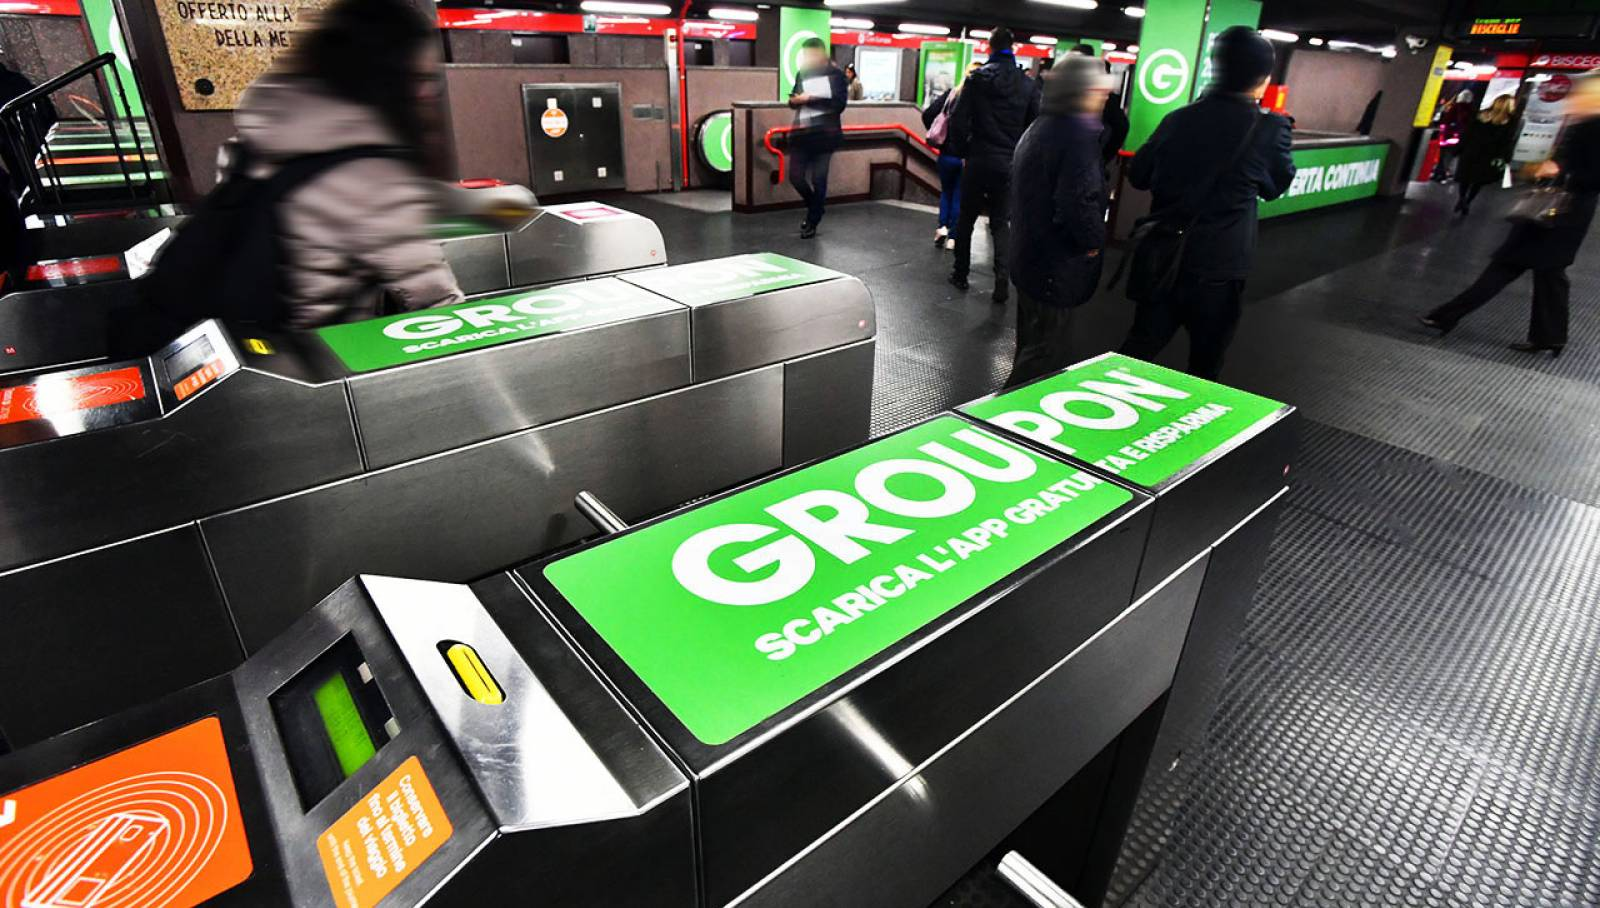 Underground advertising in Milan IGPDecaux Station Domination for Groupon